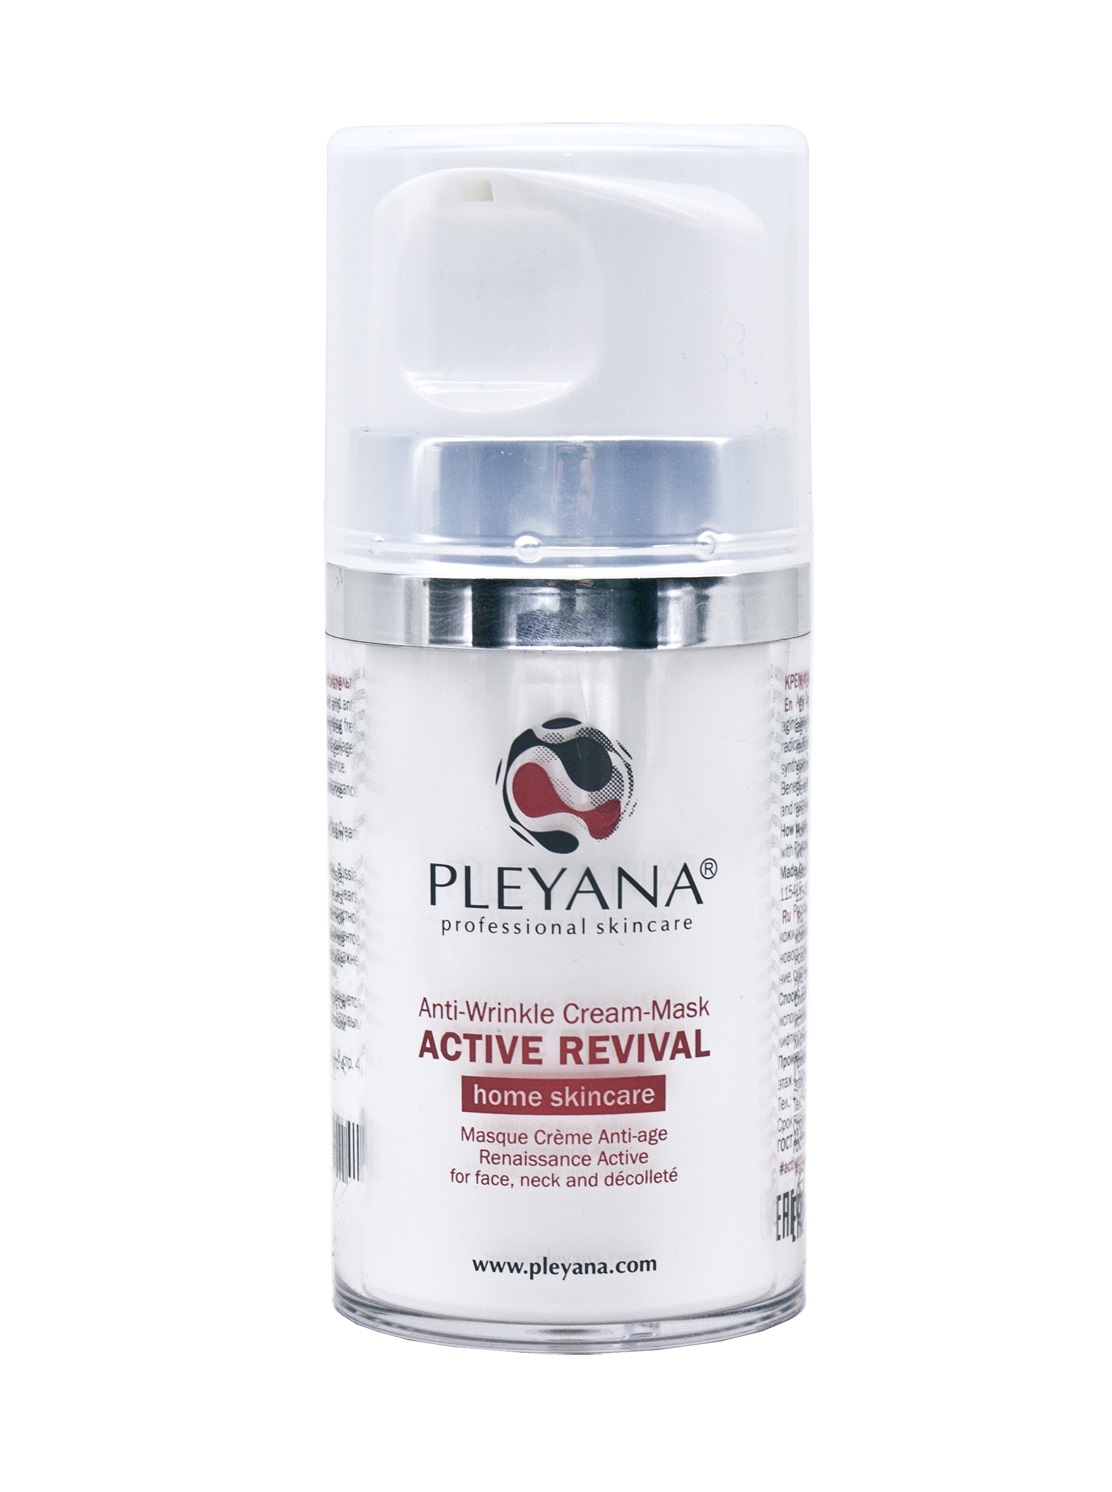 Омолаживающая крем-маска Pleyana Anti-Wrinkle Cream-Mask Active Revival